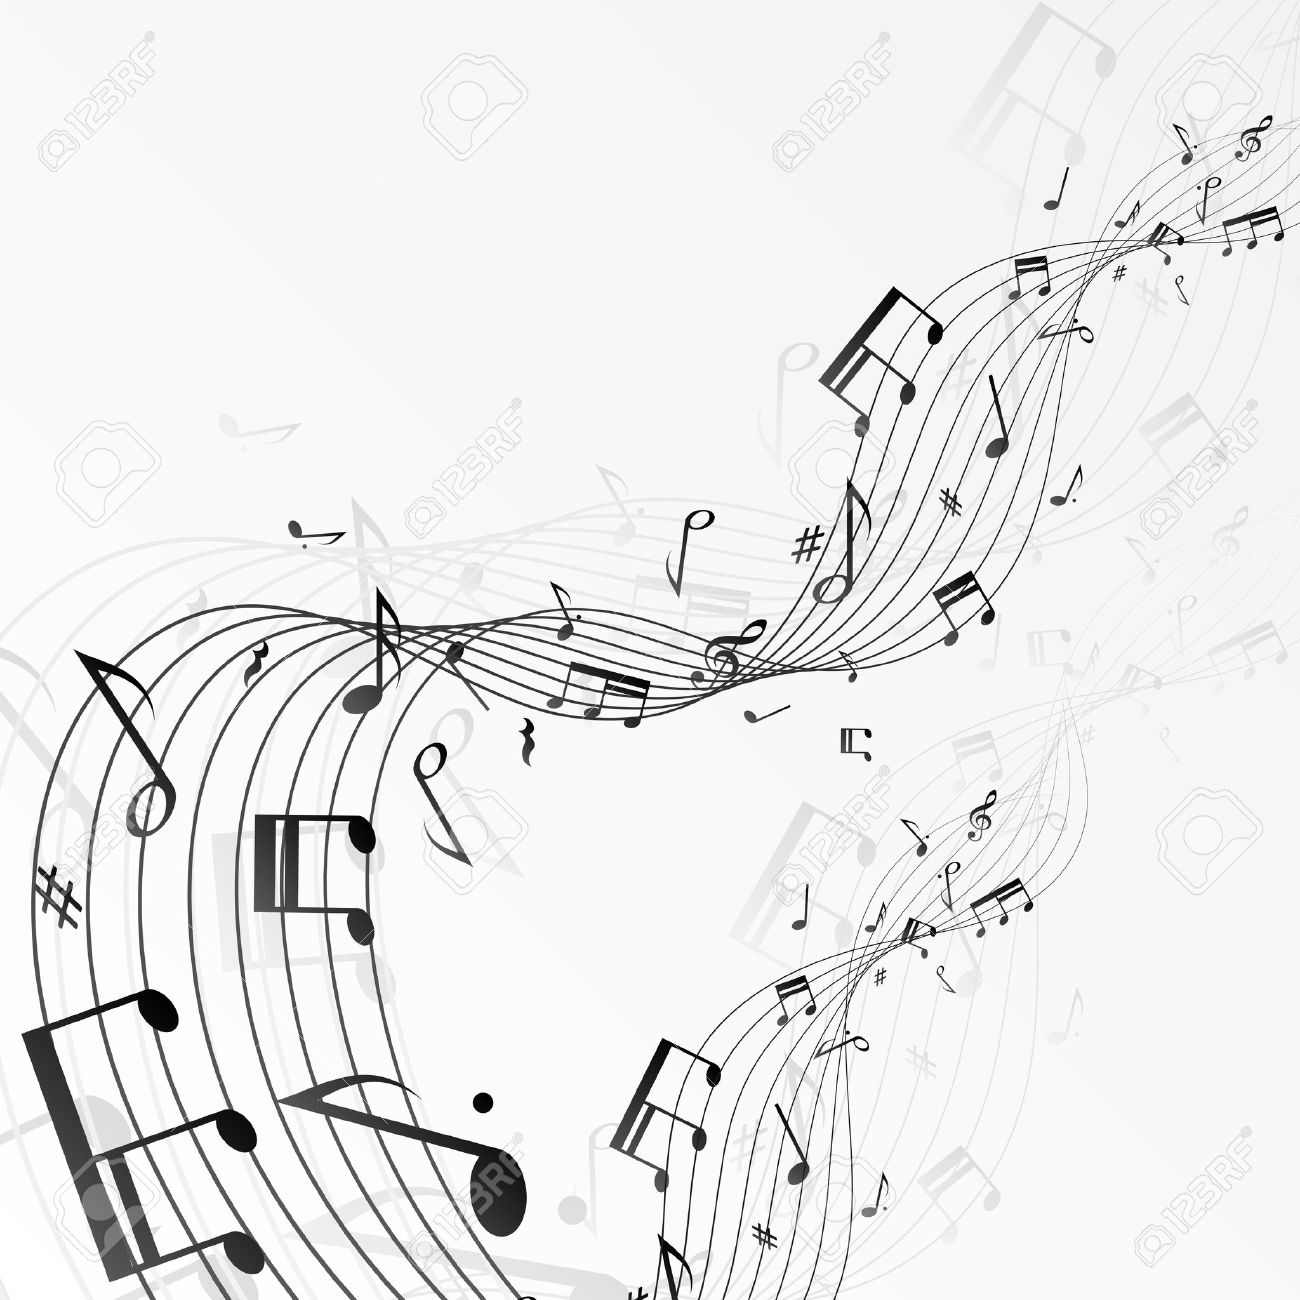 Background with music notes. - 23977150